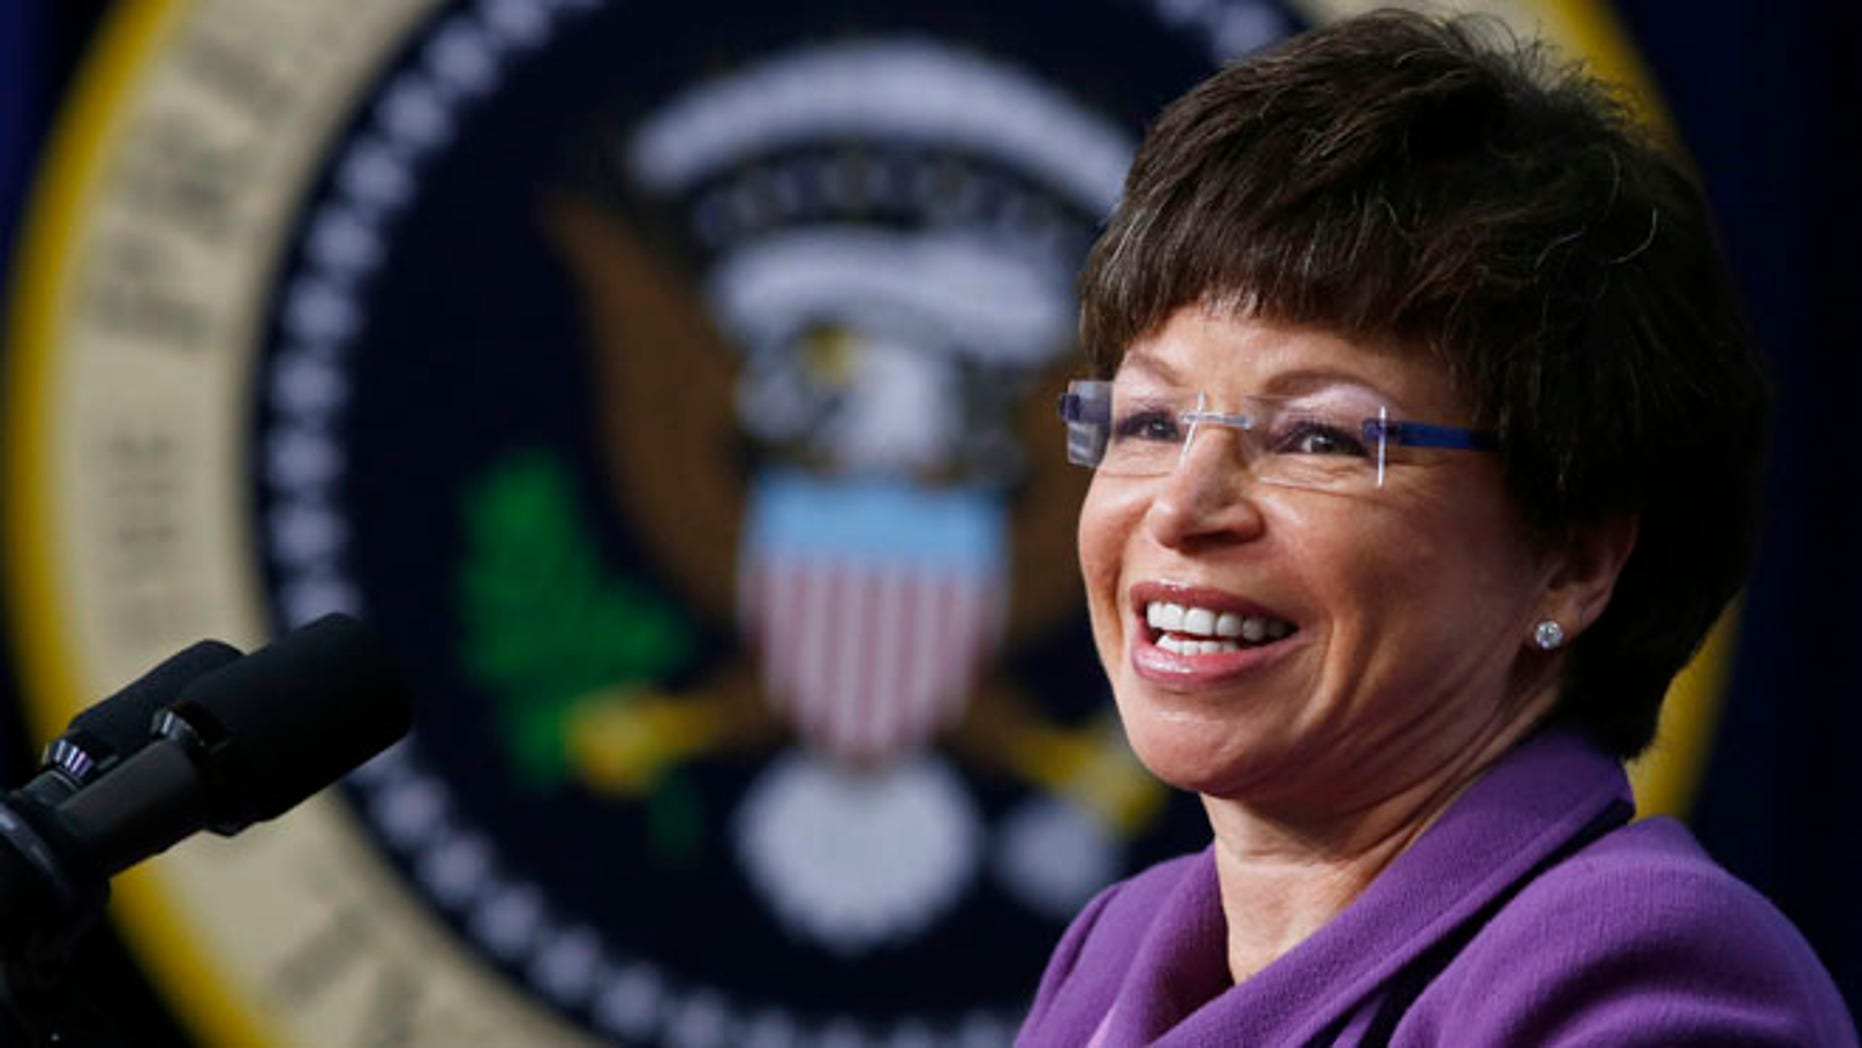 White House Senior Advisor Valerie Jarrett inside the Eisenhower Executive Office Building on the White House complex in Washington, January 16, 2014.